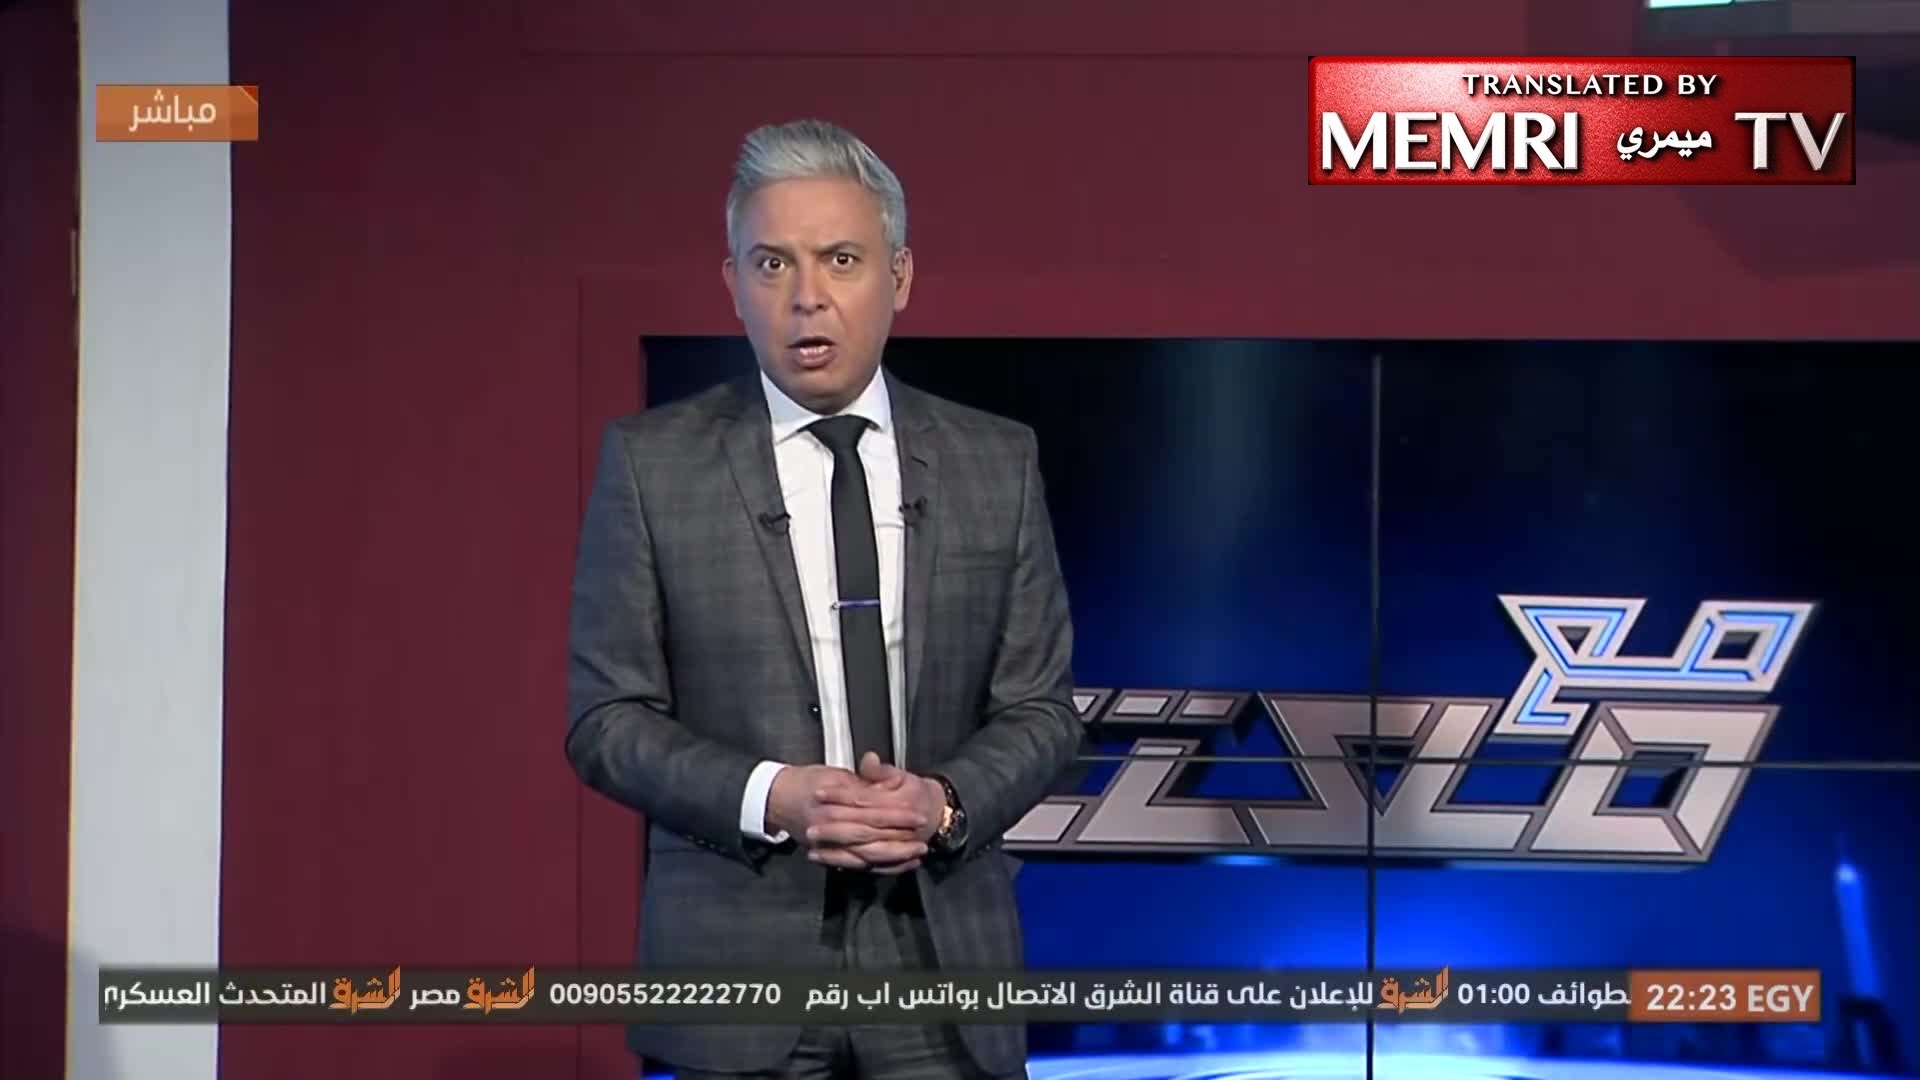 Moataz Matar, Host on Egyptian Muslim Brotherhood TV on Syria Strike: Trump Has Given Al-Assad Another Kiss of Life